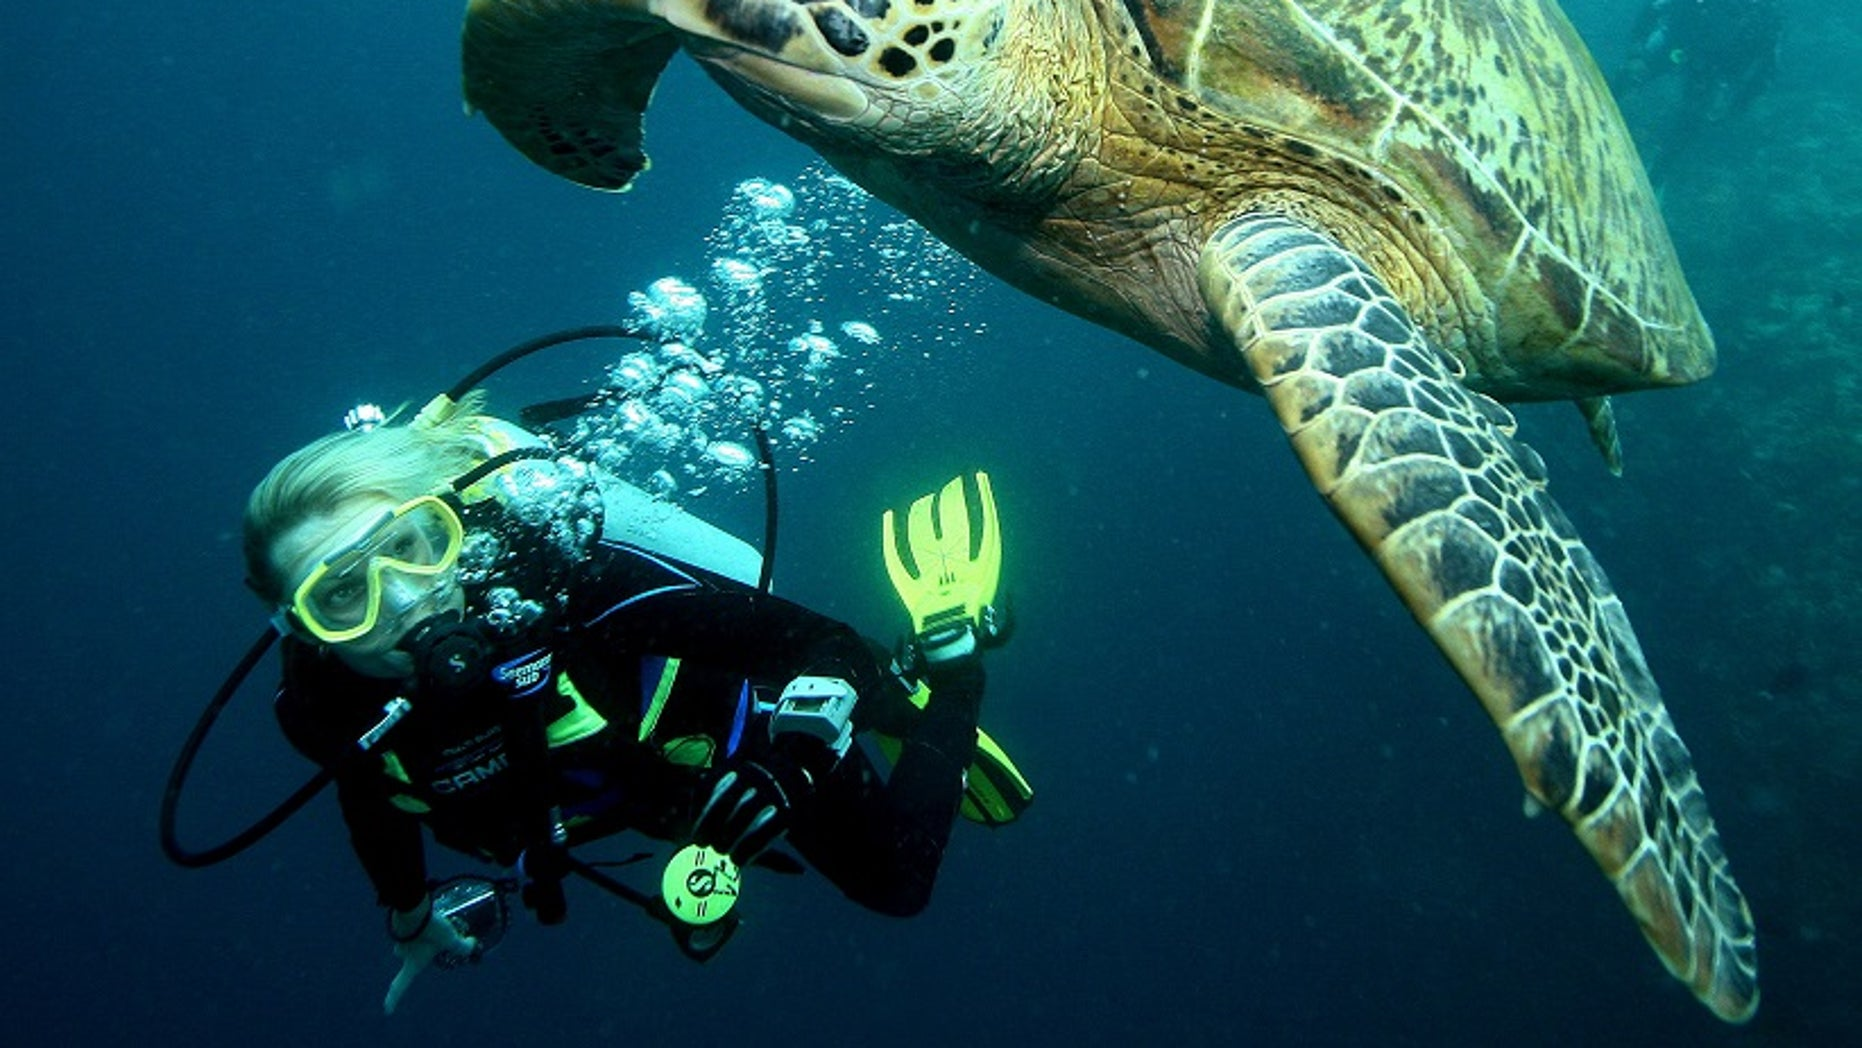 A diver swims near a giant turtle at a diving site near the island of Sipadan in Celebes Sea east of Borneo November 7, 2005.